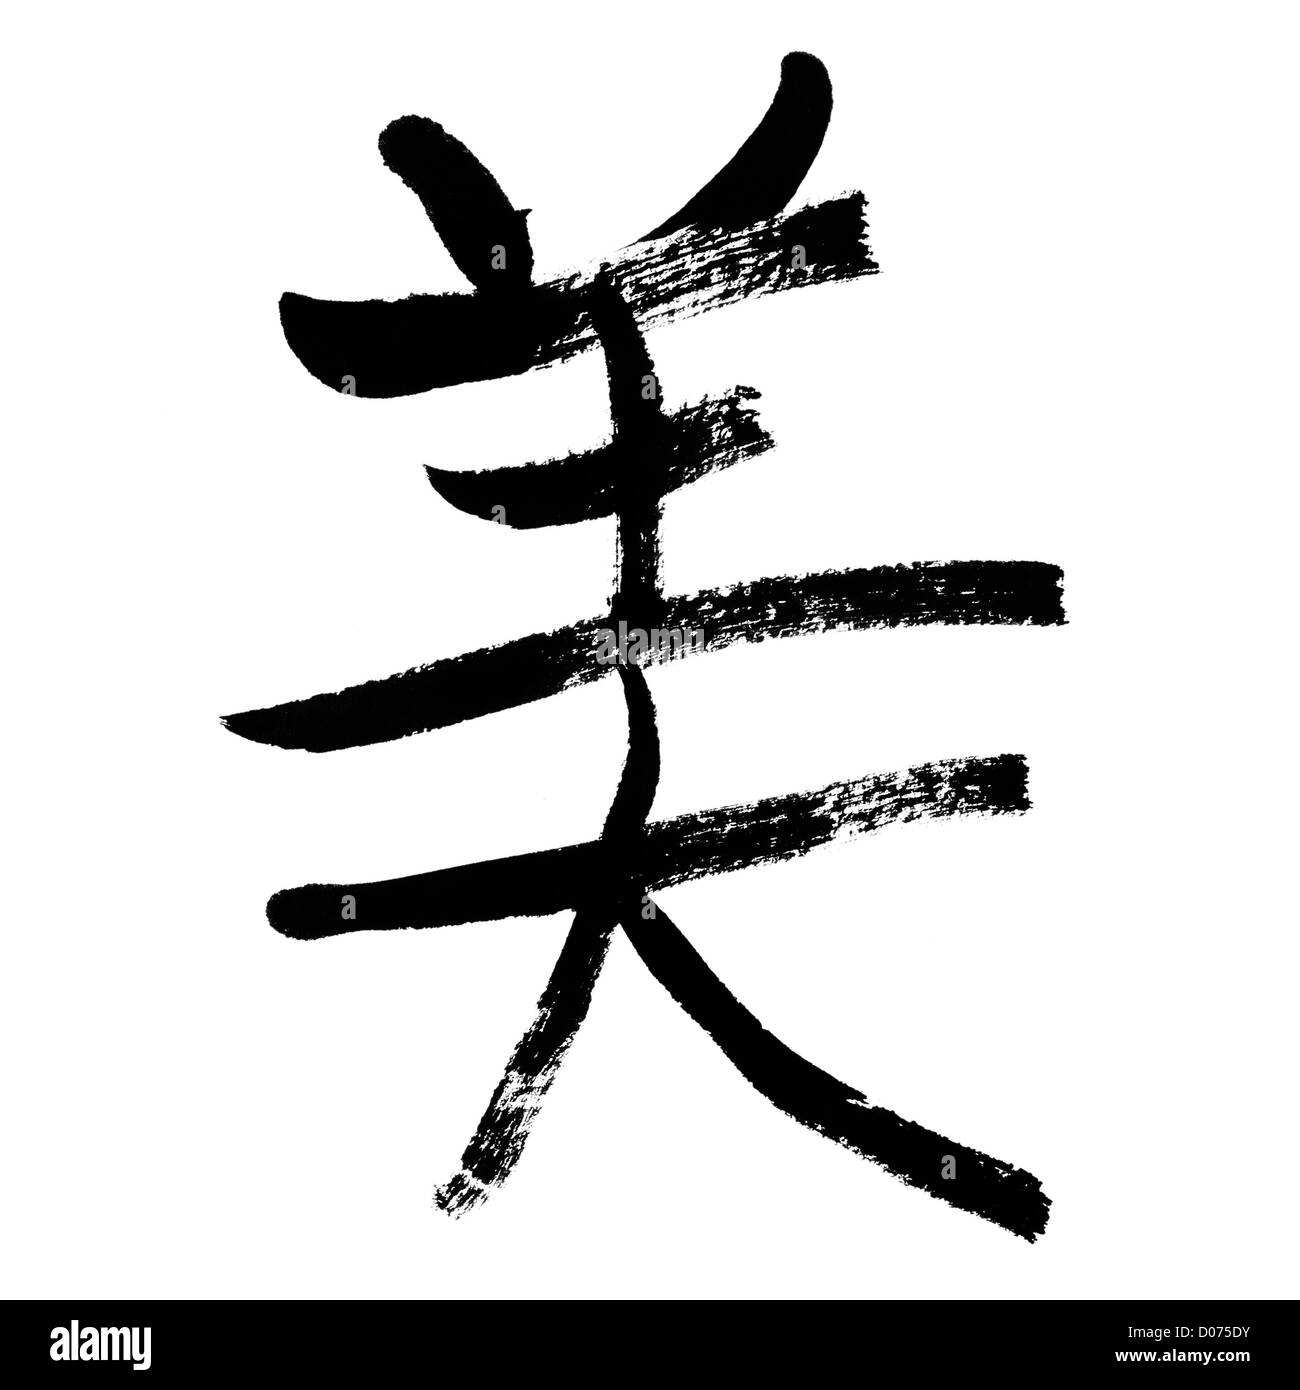 Beauty traditional chinese calligraphy art isolated on white beauty traditional chinese calligraphy art isolated on white background biocorpaavc Images